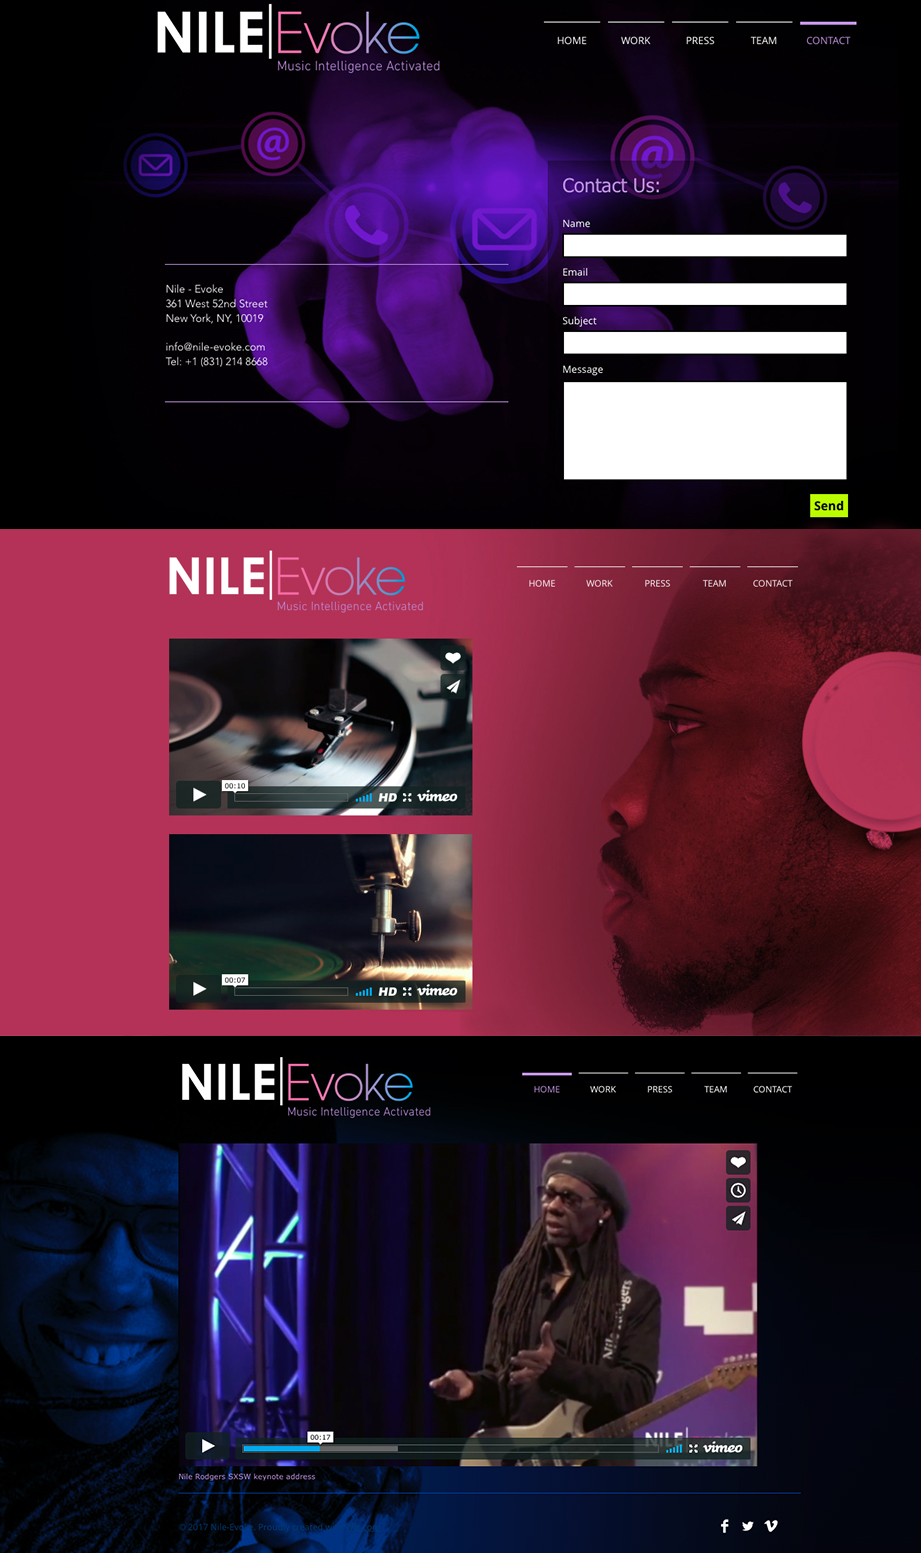 Nile-Evoke website design